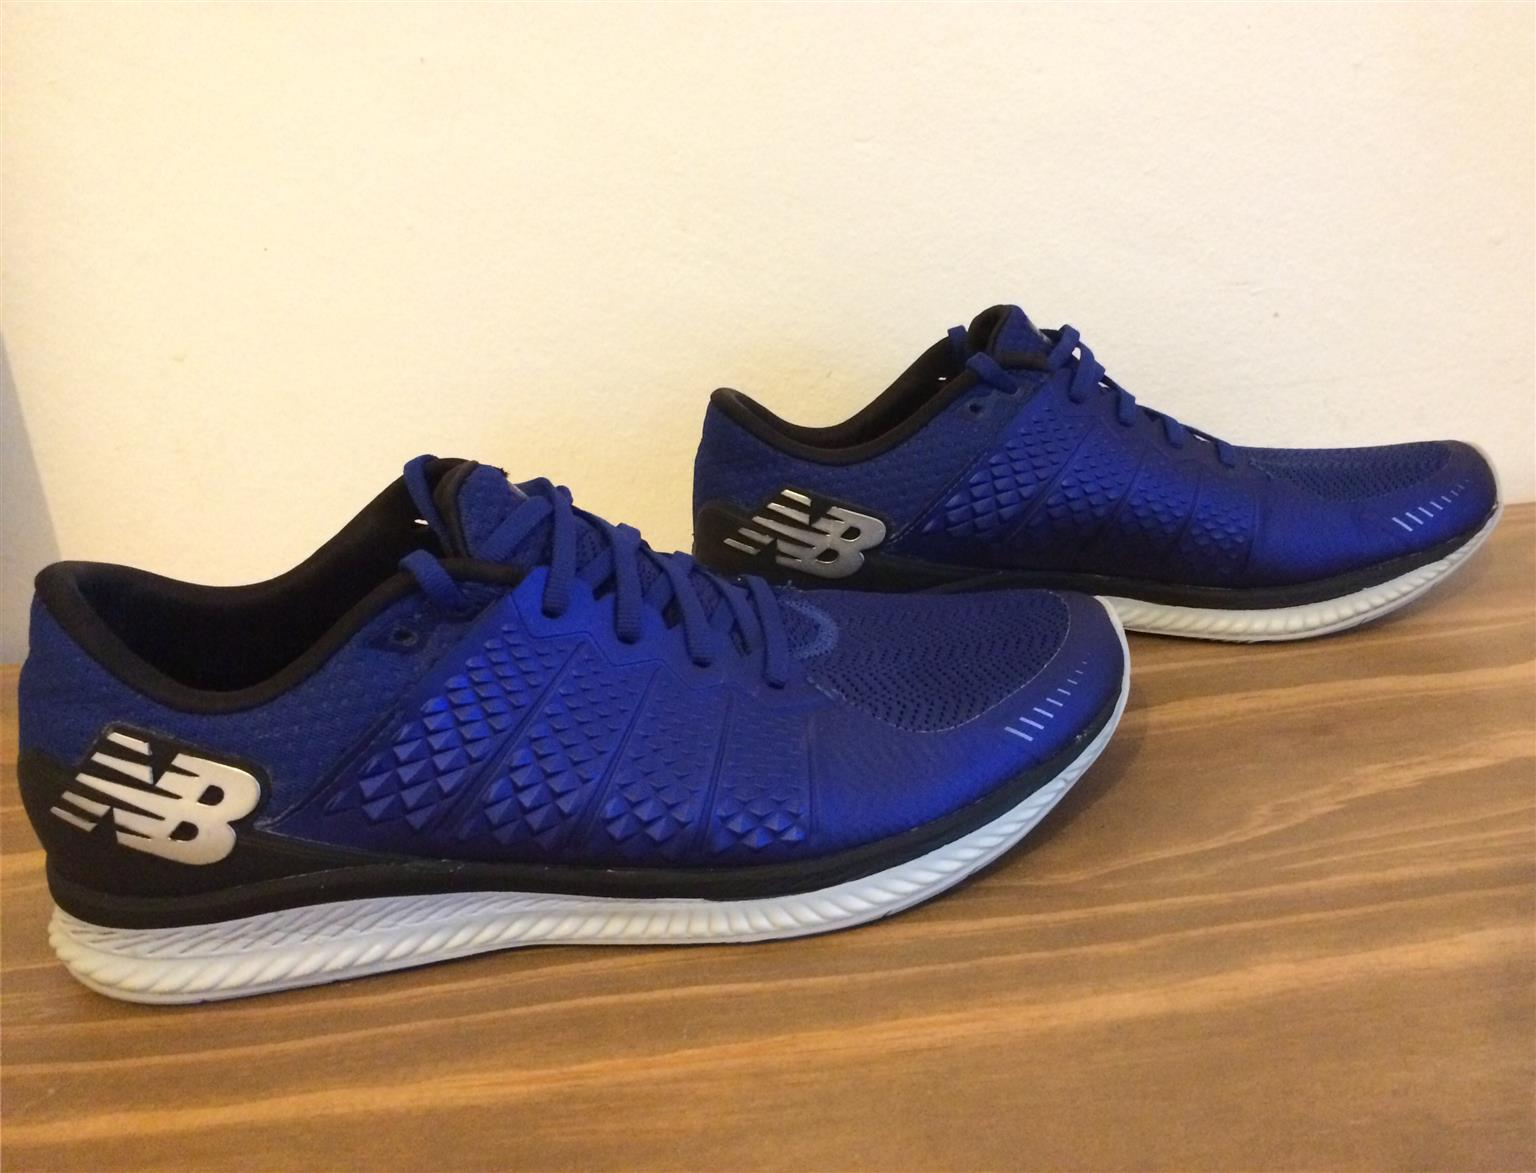 New Balance Fuel Cell running shoes